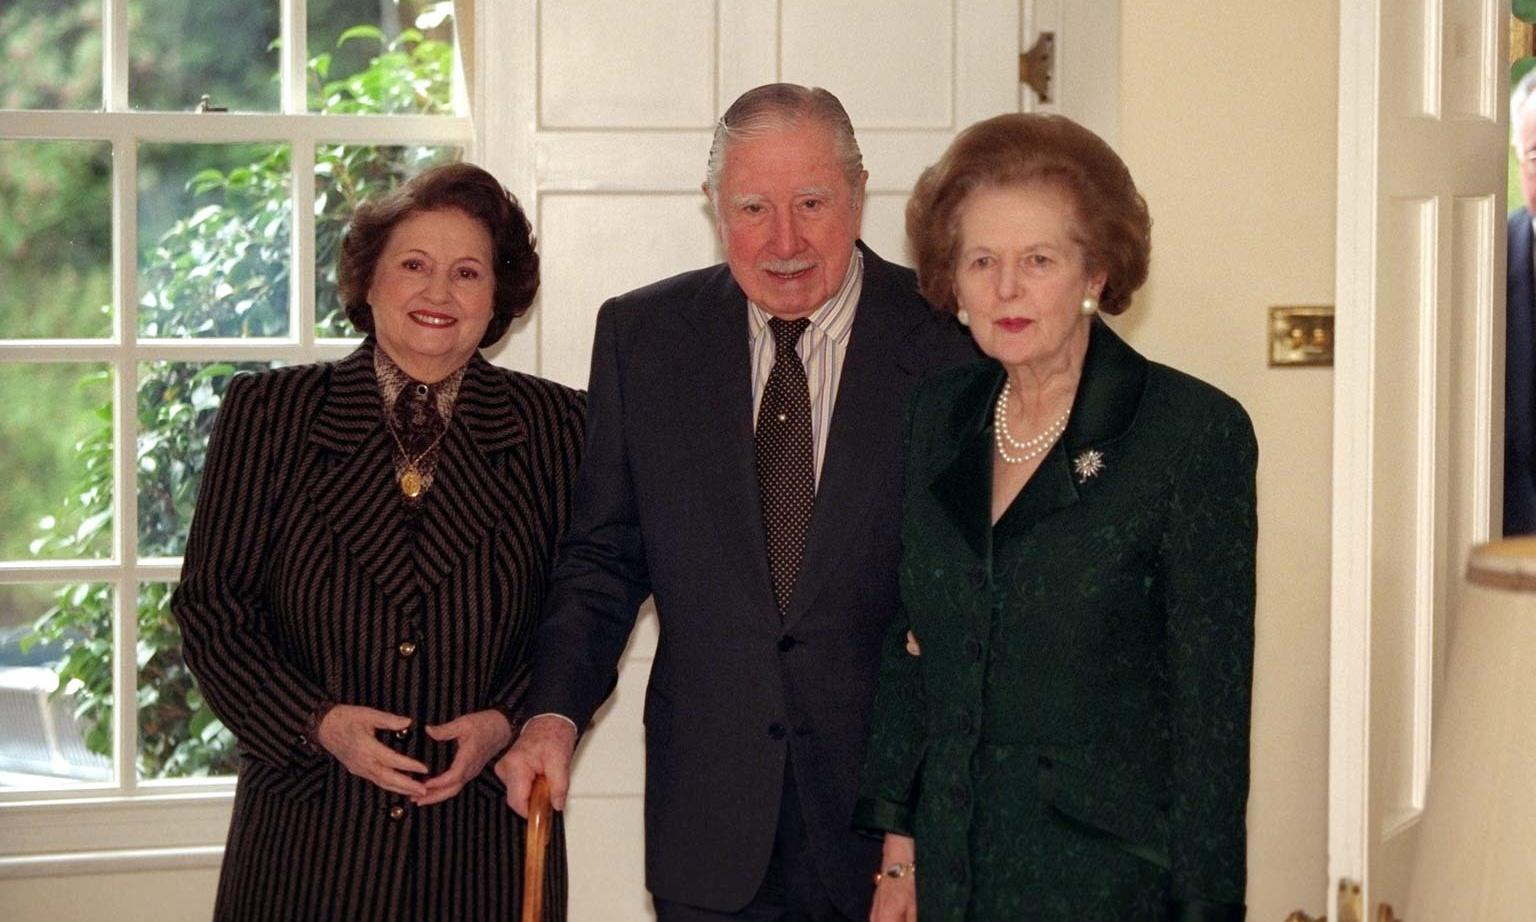 Thatcher sent Pinochet finest scotch during former dictator's UK house arrest